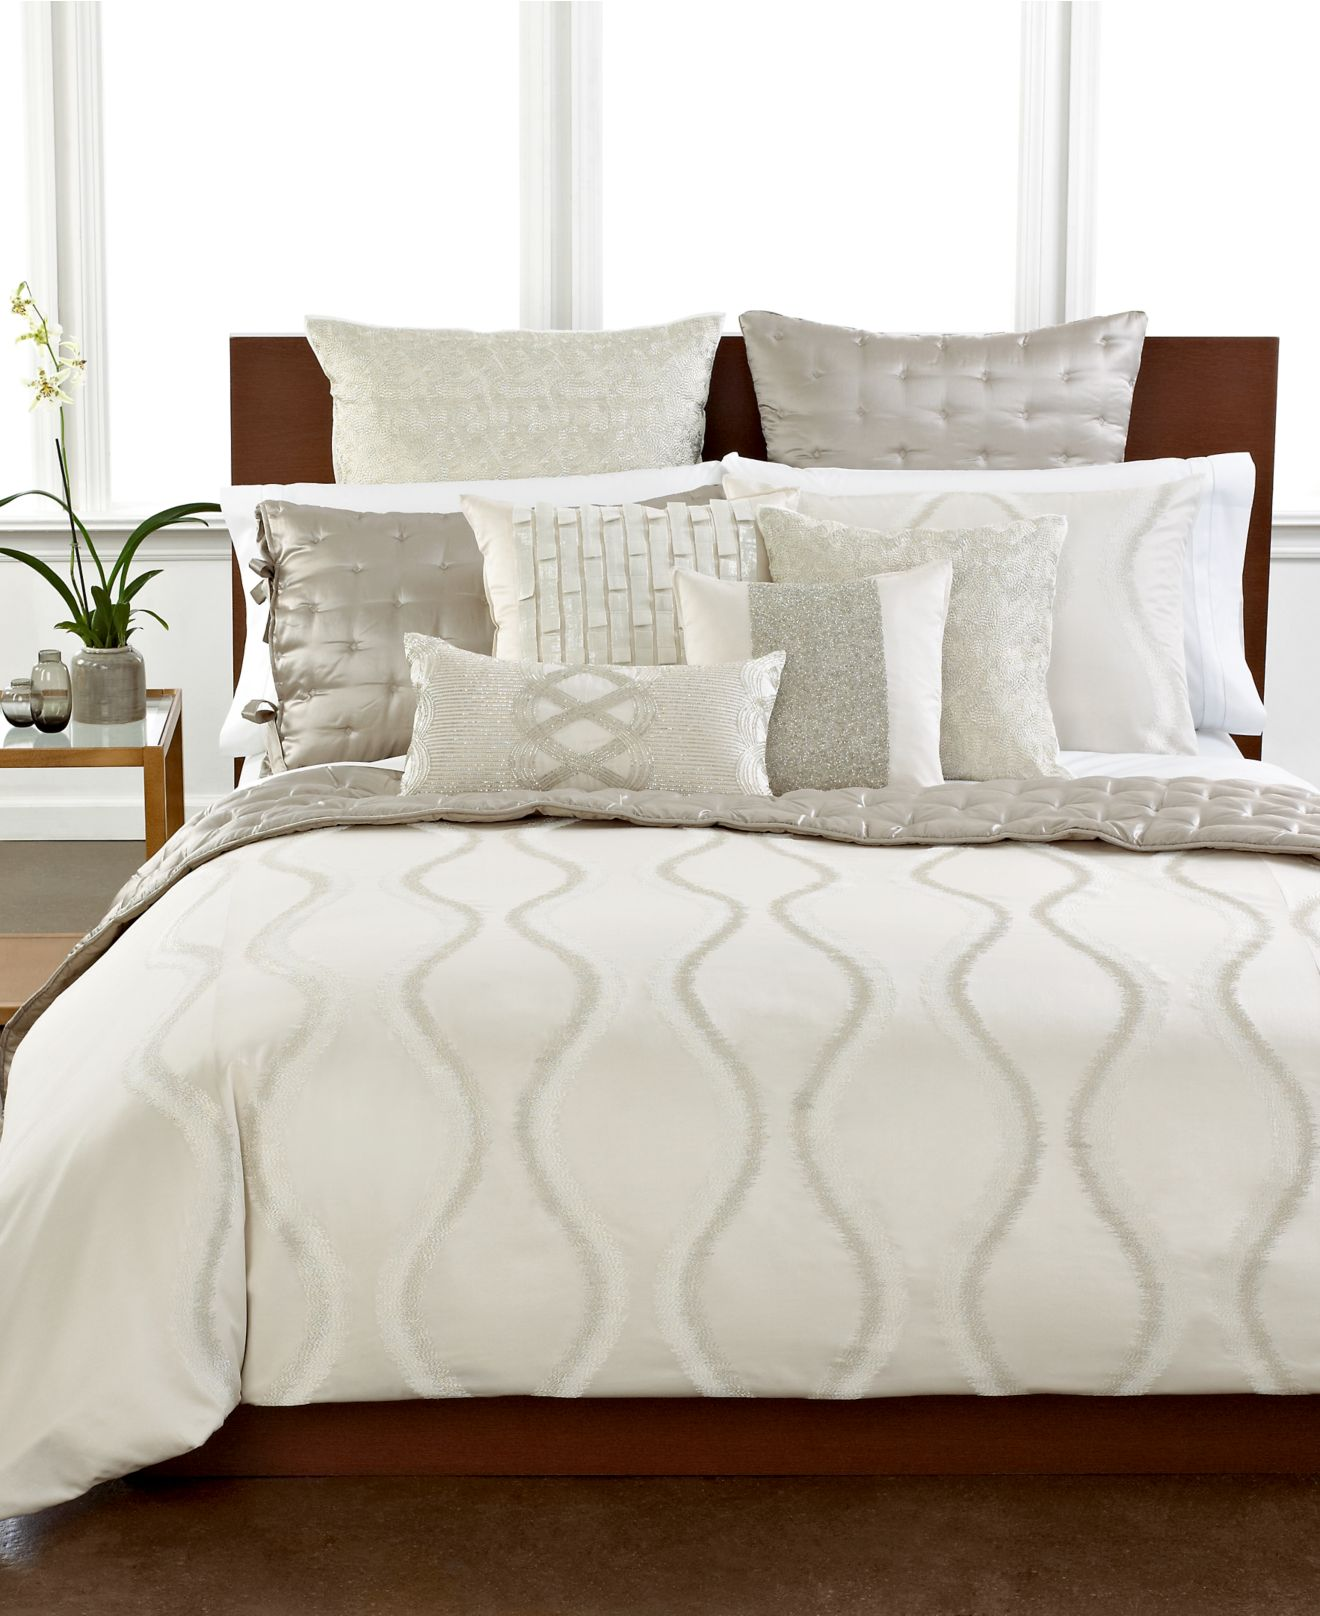 Hotel collection finest luster bedding collection, only at macy's ...